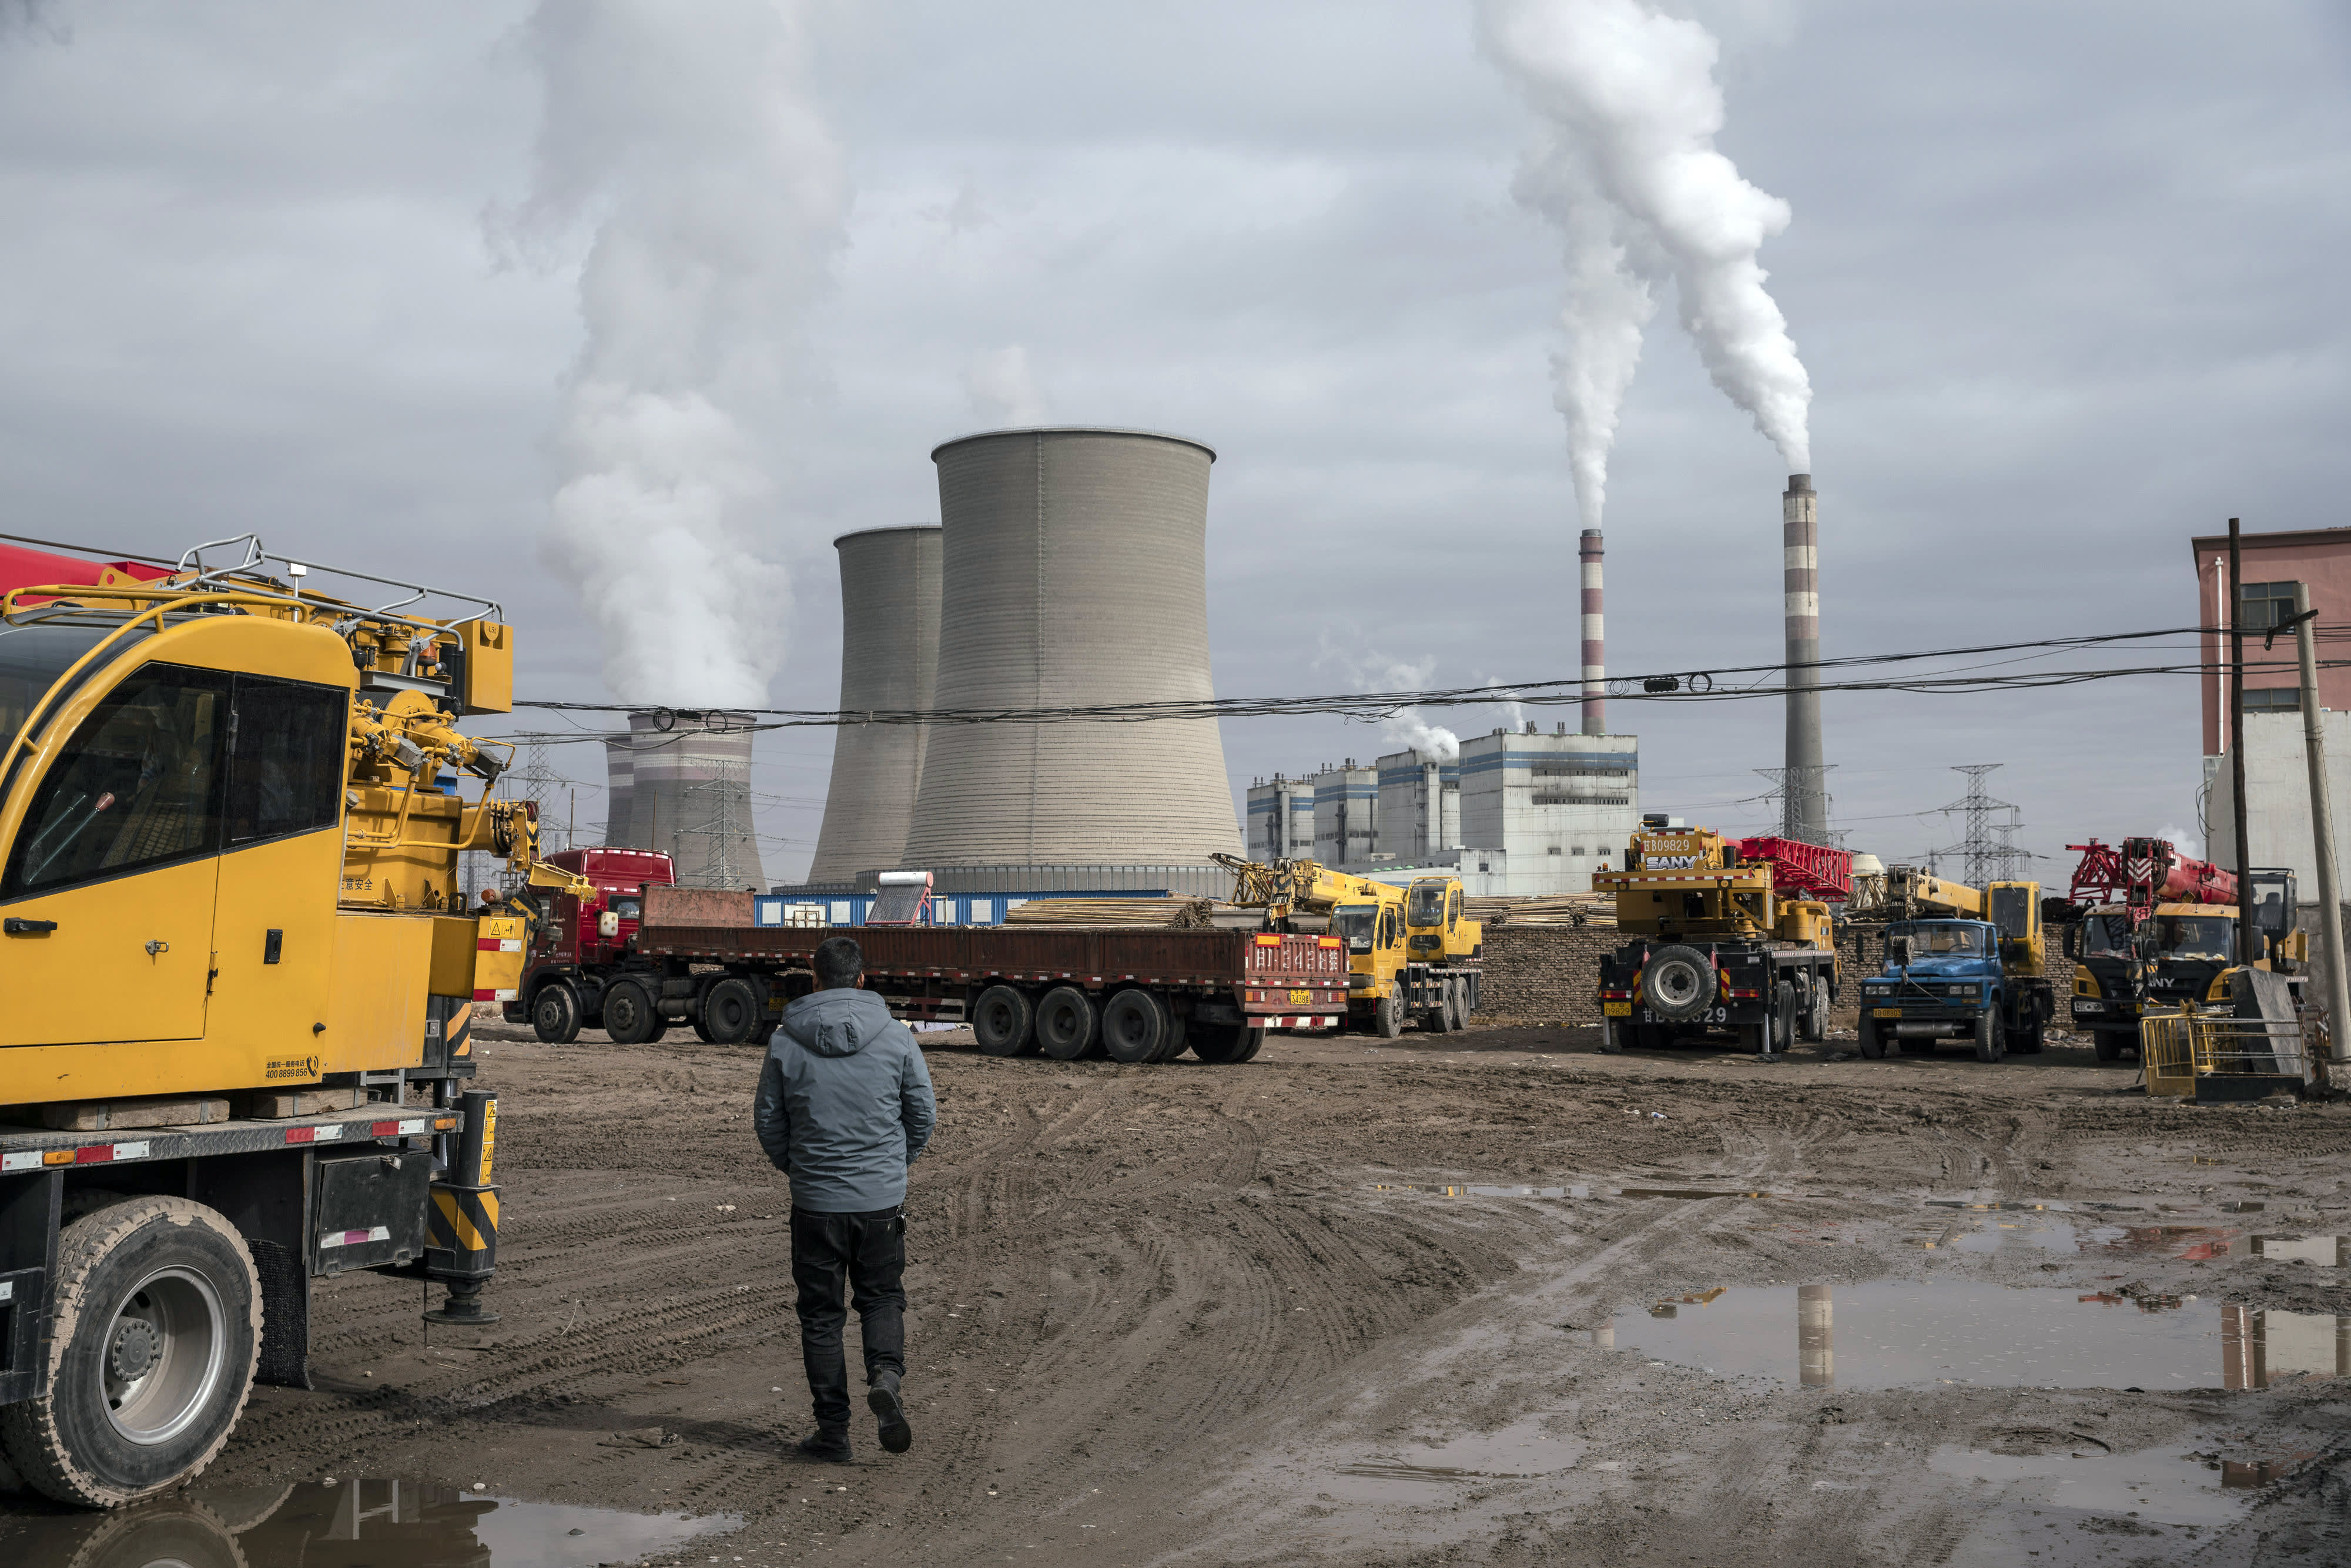 Climate expert calls on China and Japan to end financing of coal plants in poorer nations